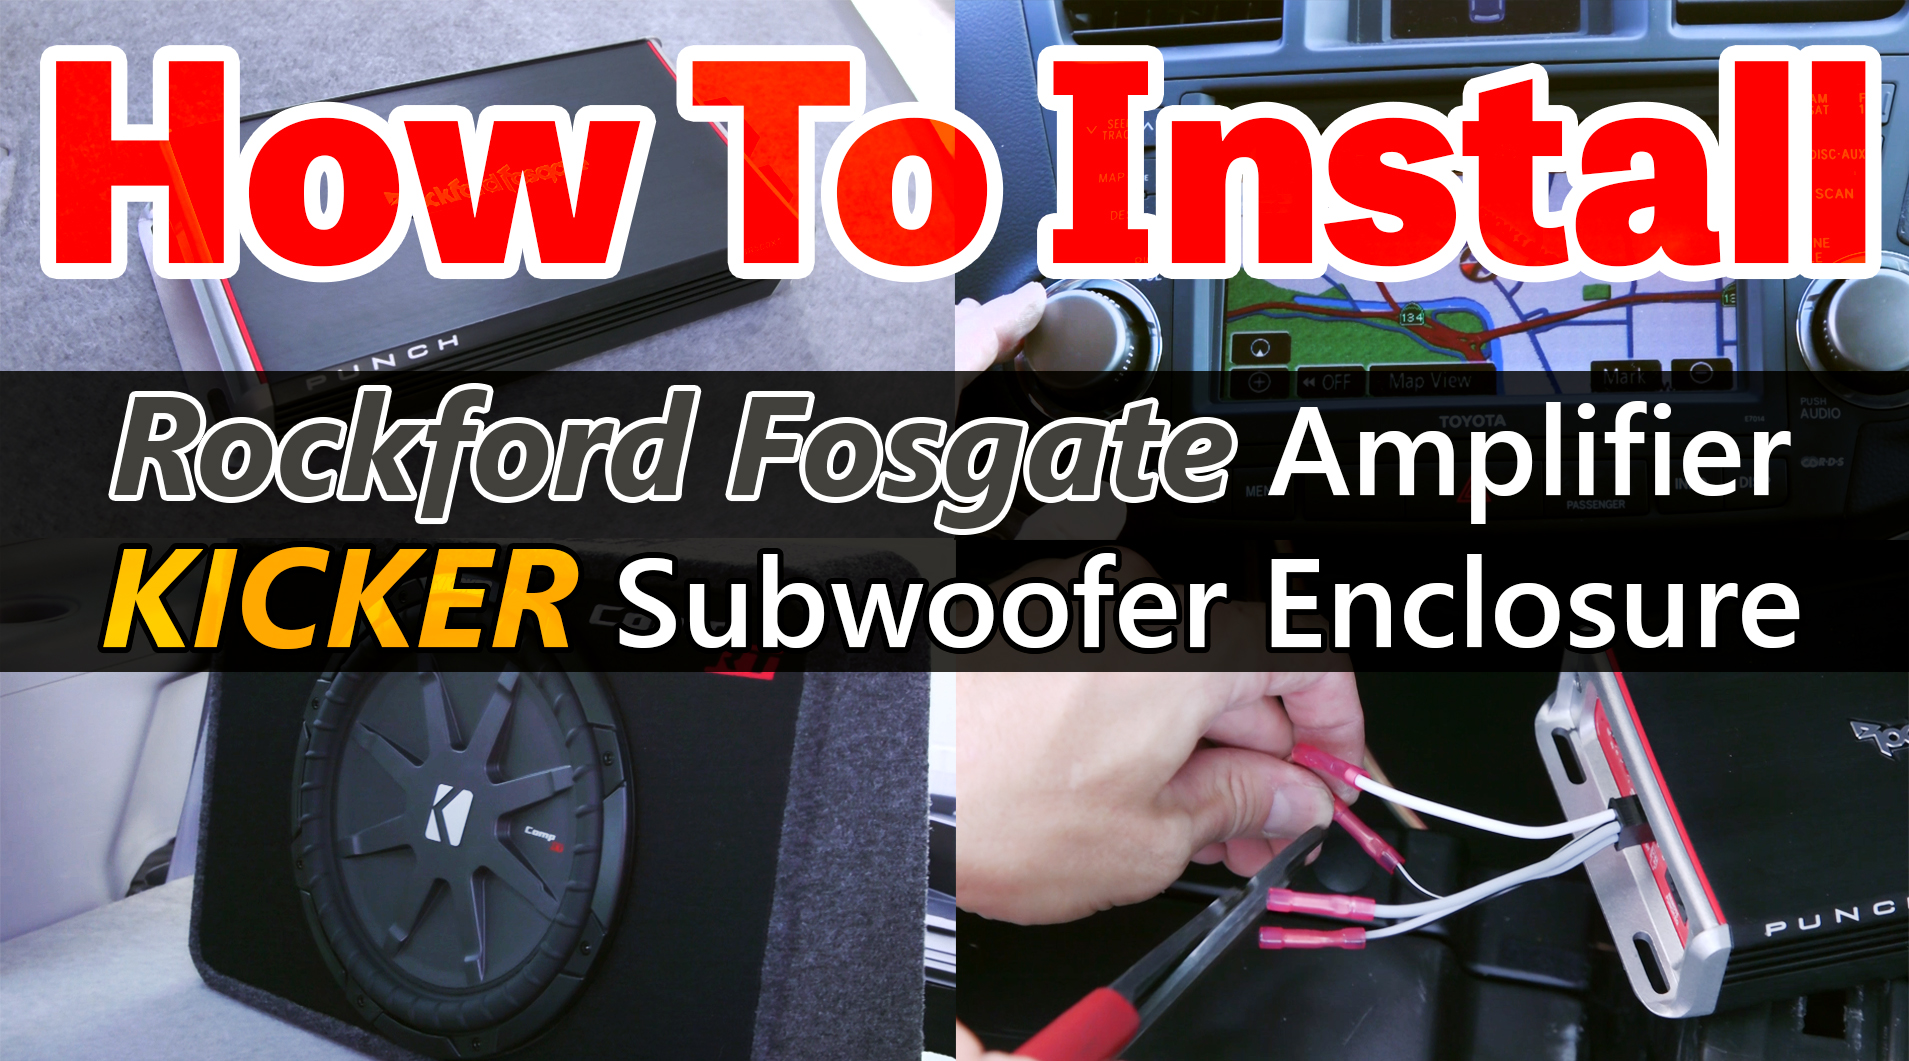 How To Install An Amplifier And Subwoofer In A Car Quality Mobile 10 Inch Rockford Fosgate Sub Wiring Diagram Video Blog